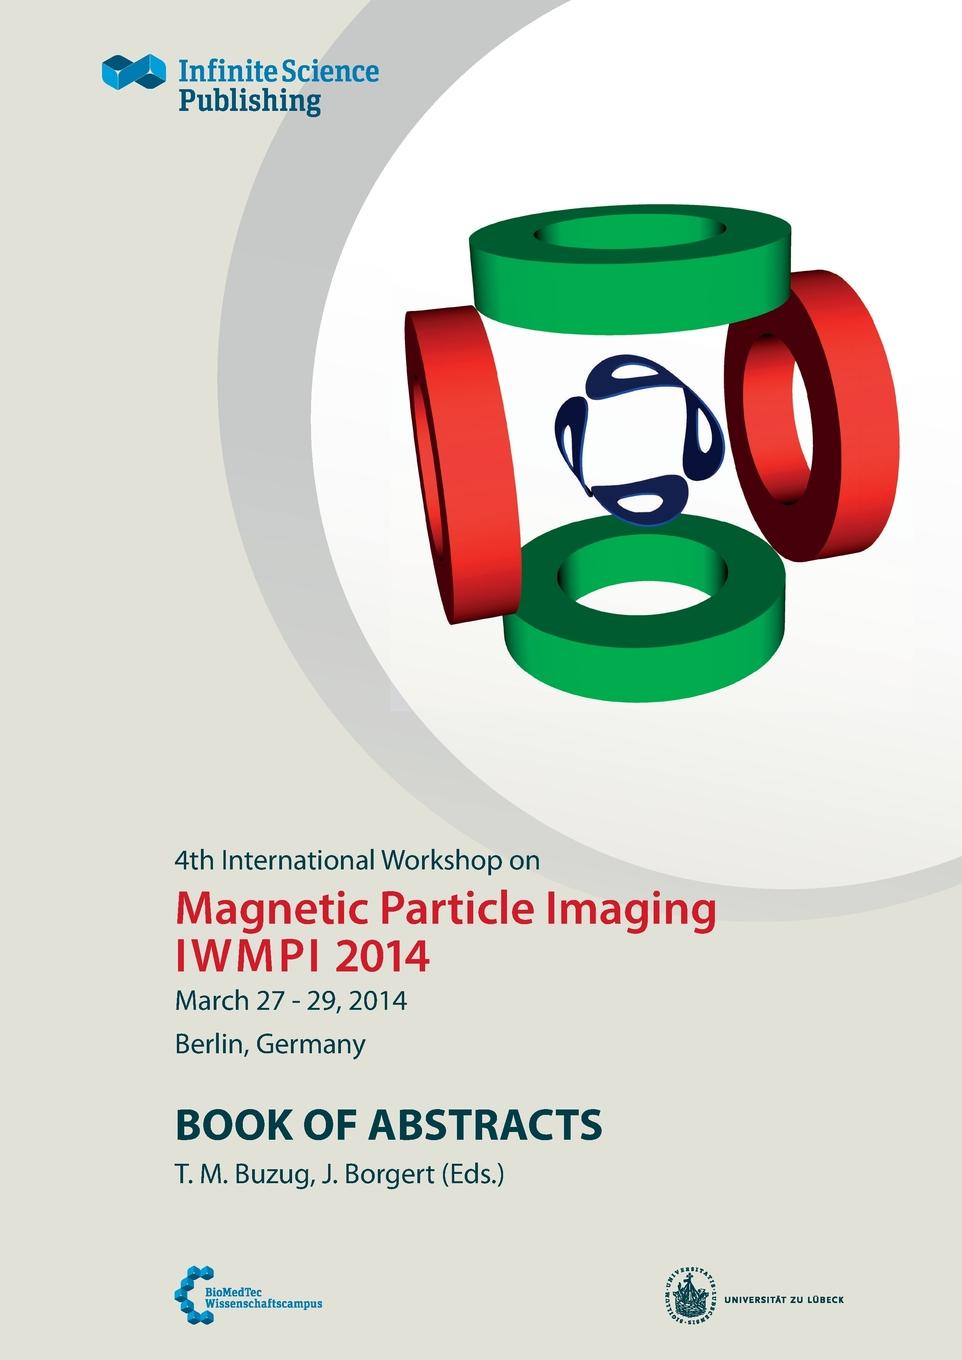 4th International Workshop on Magnetic Particle Imaging arnulf oppelt imaging systems for medical diagnostics fundamentals technical solutions and applications for systems applying ionizing radiation nuclear magnetic resonance and ultrasound